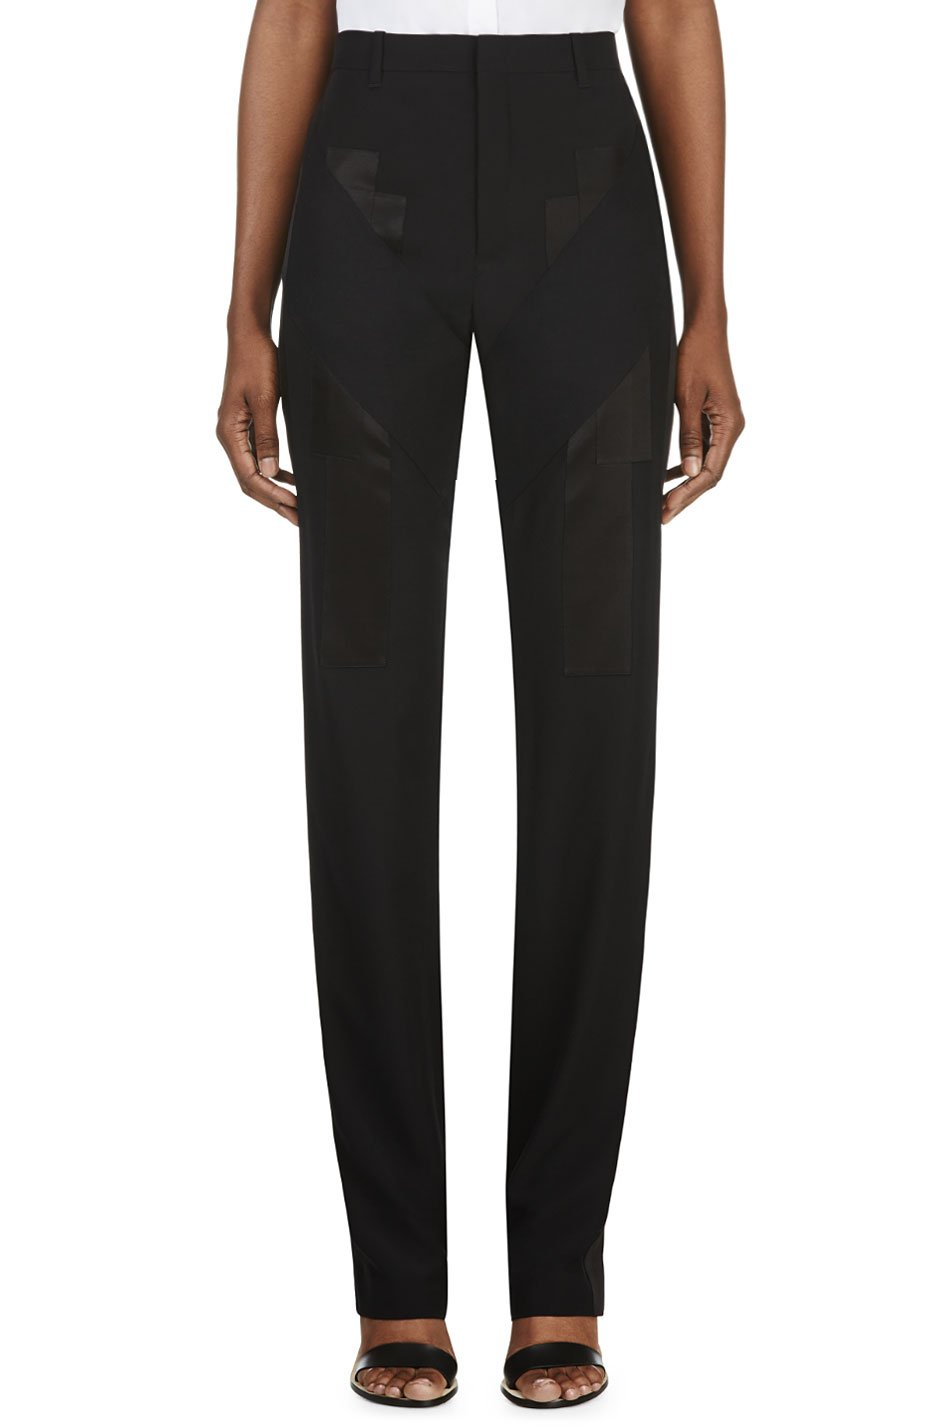 givenchy black satin appliqu trousers